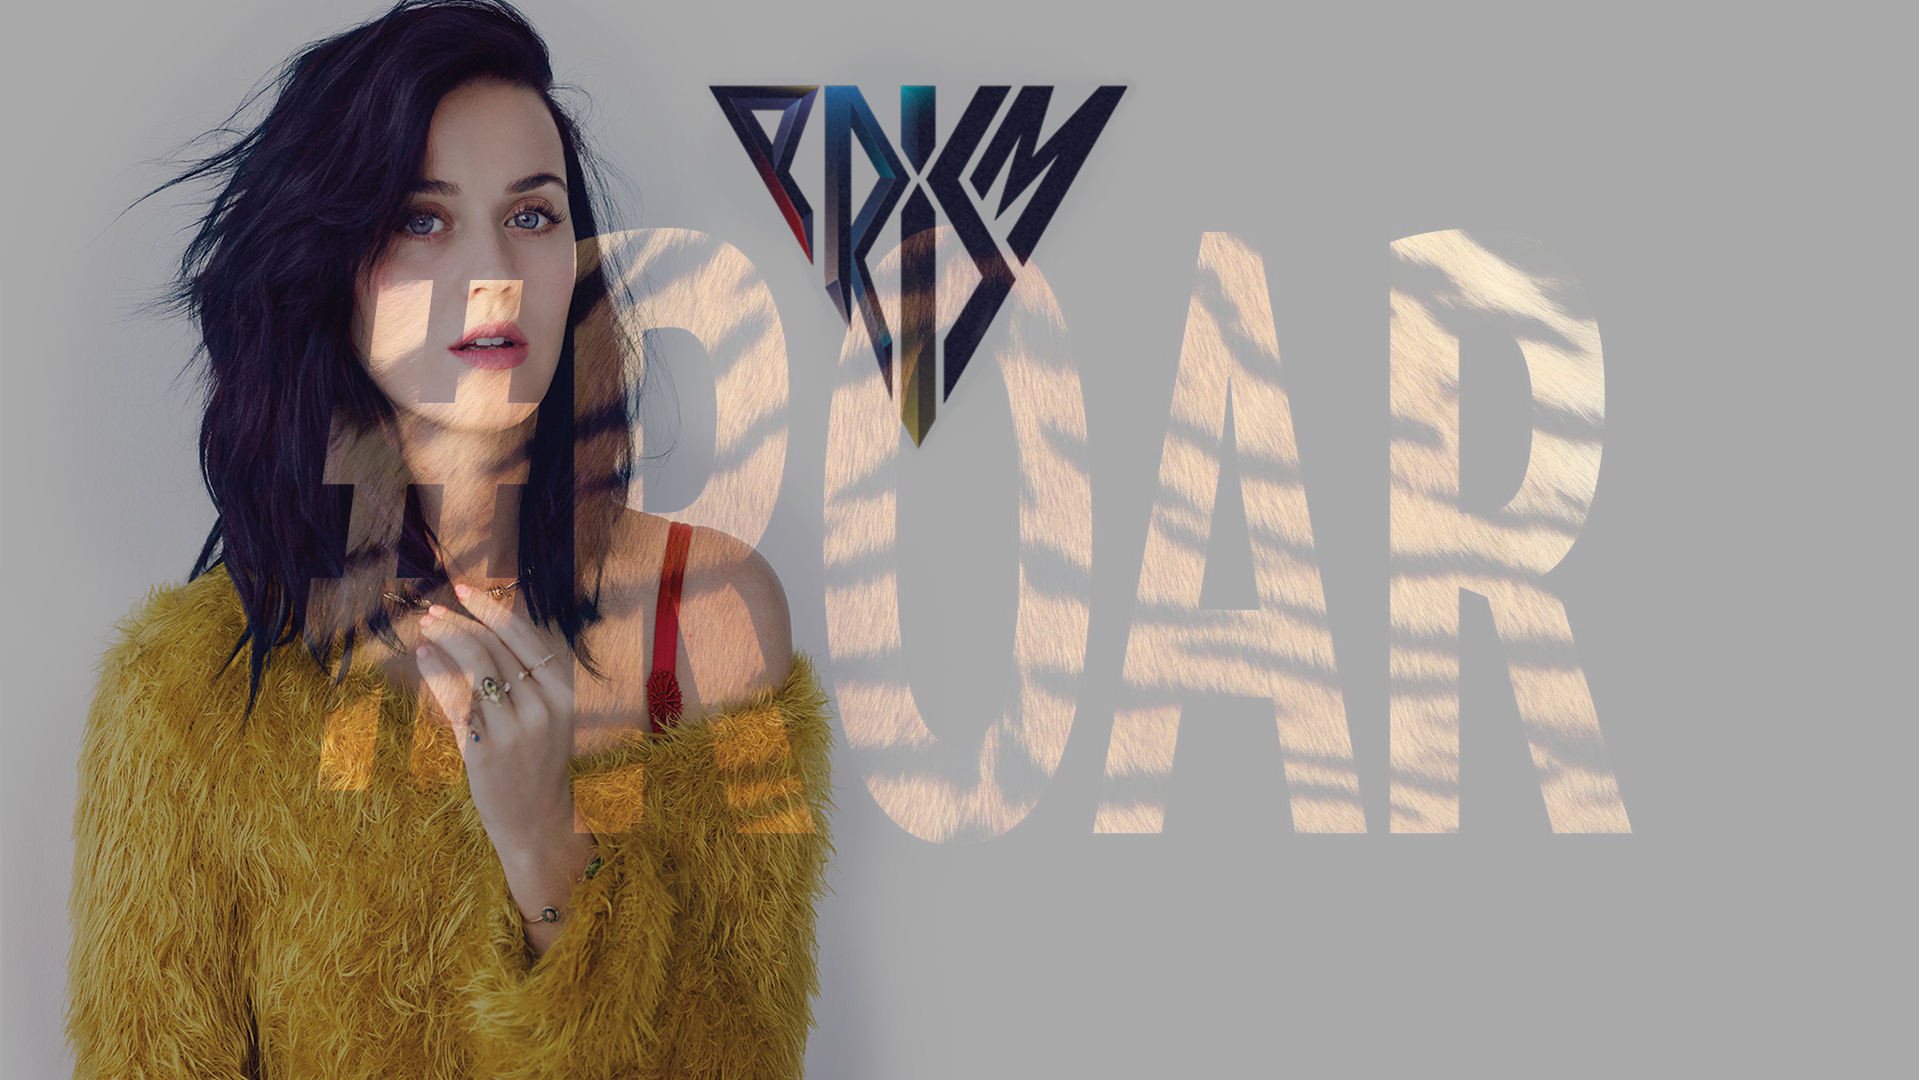 Katy Perry Roar (Prism HD Wallpaper and background photos of Katy Perry  Roar (Prism for fans of Katy Perry images.